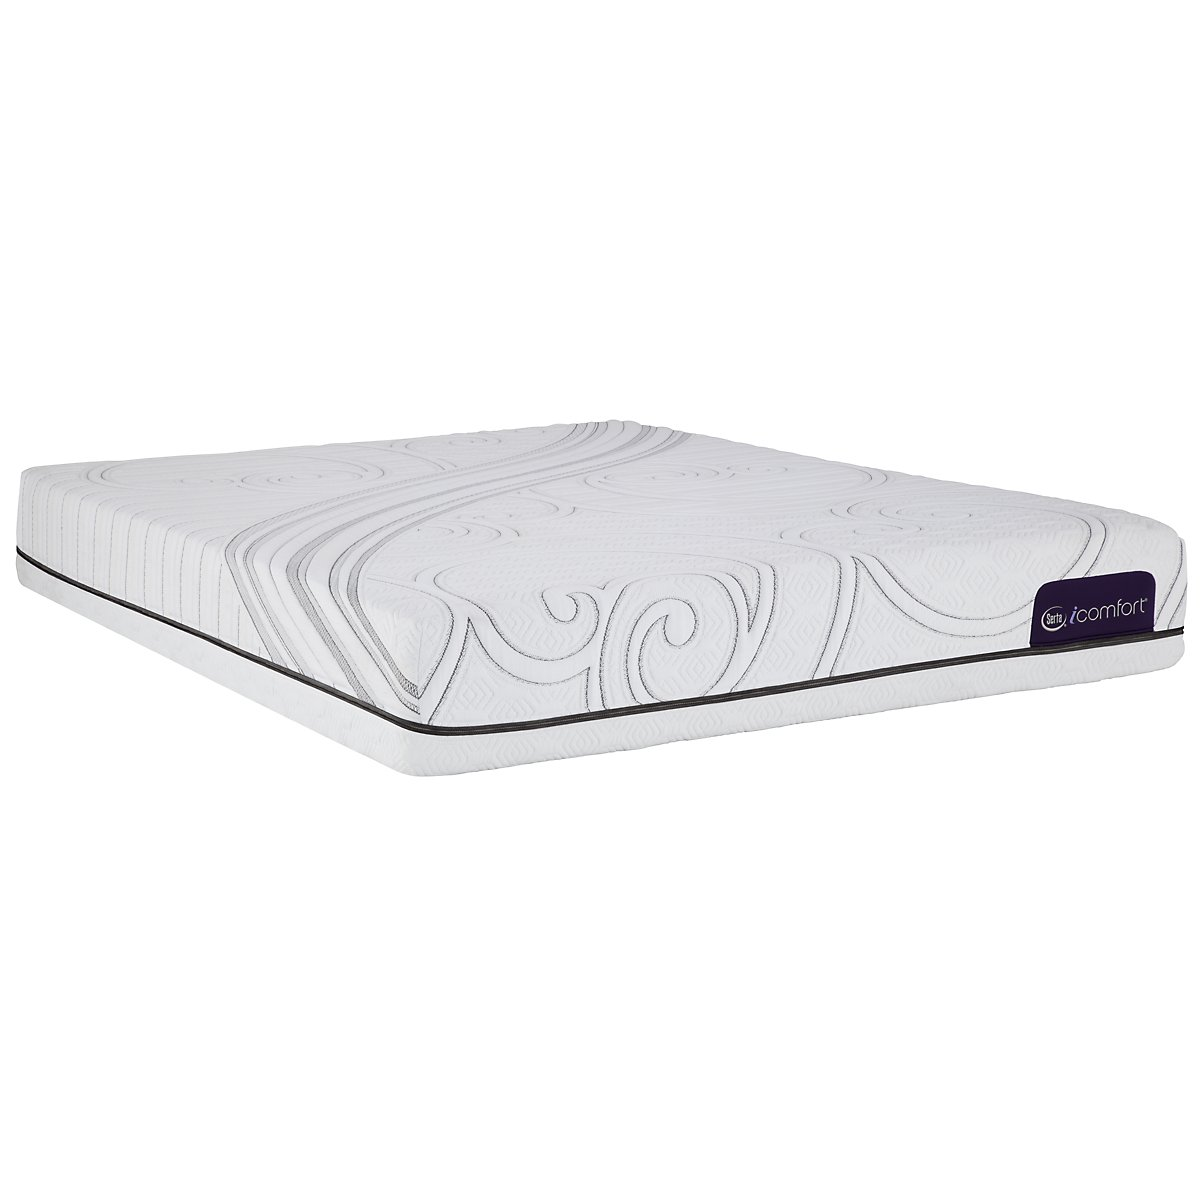 Serta iComfort Foresight Gel Mattress